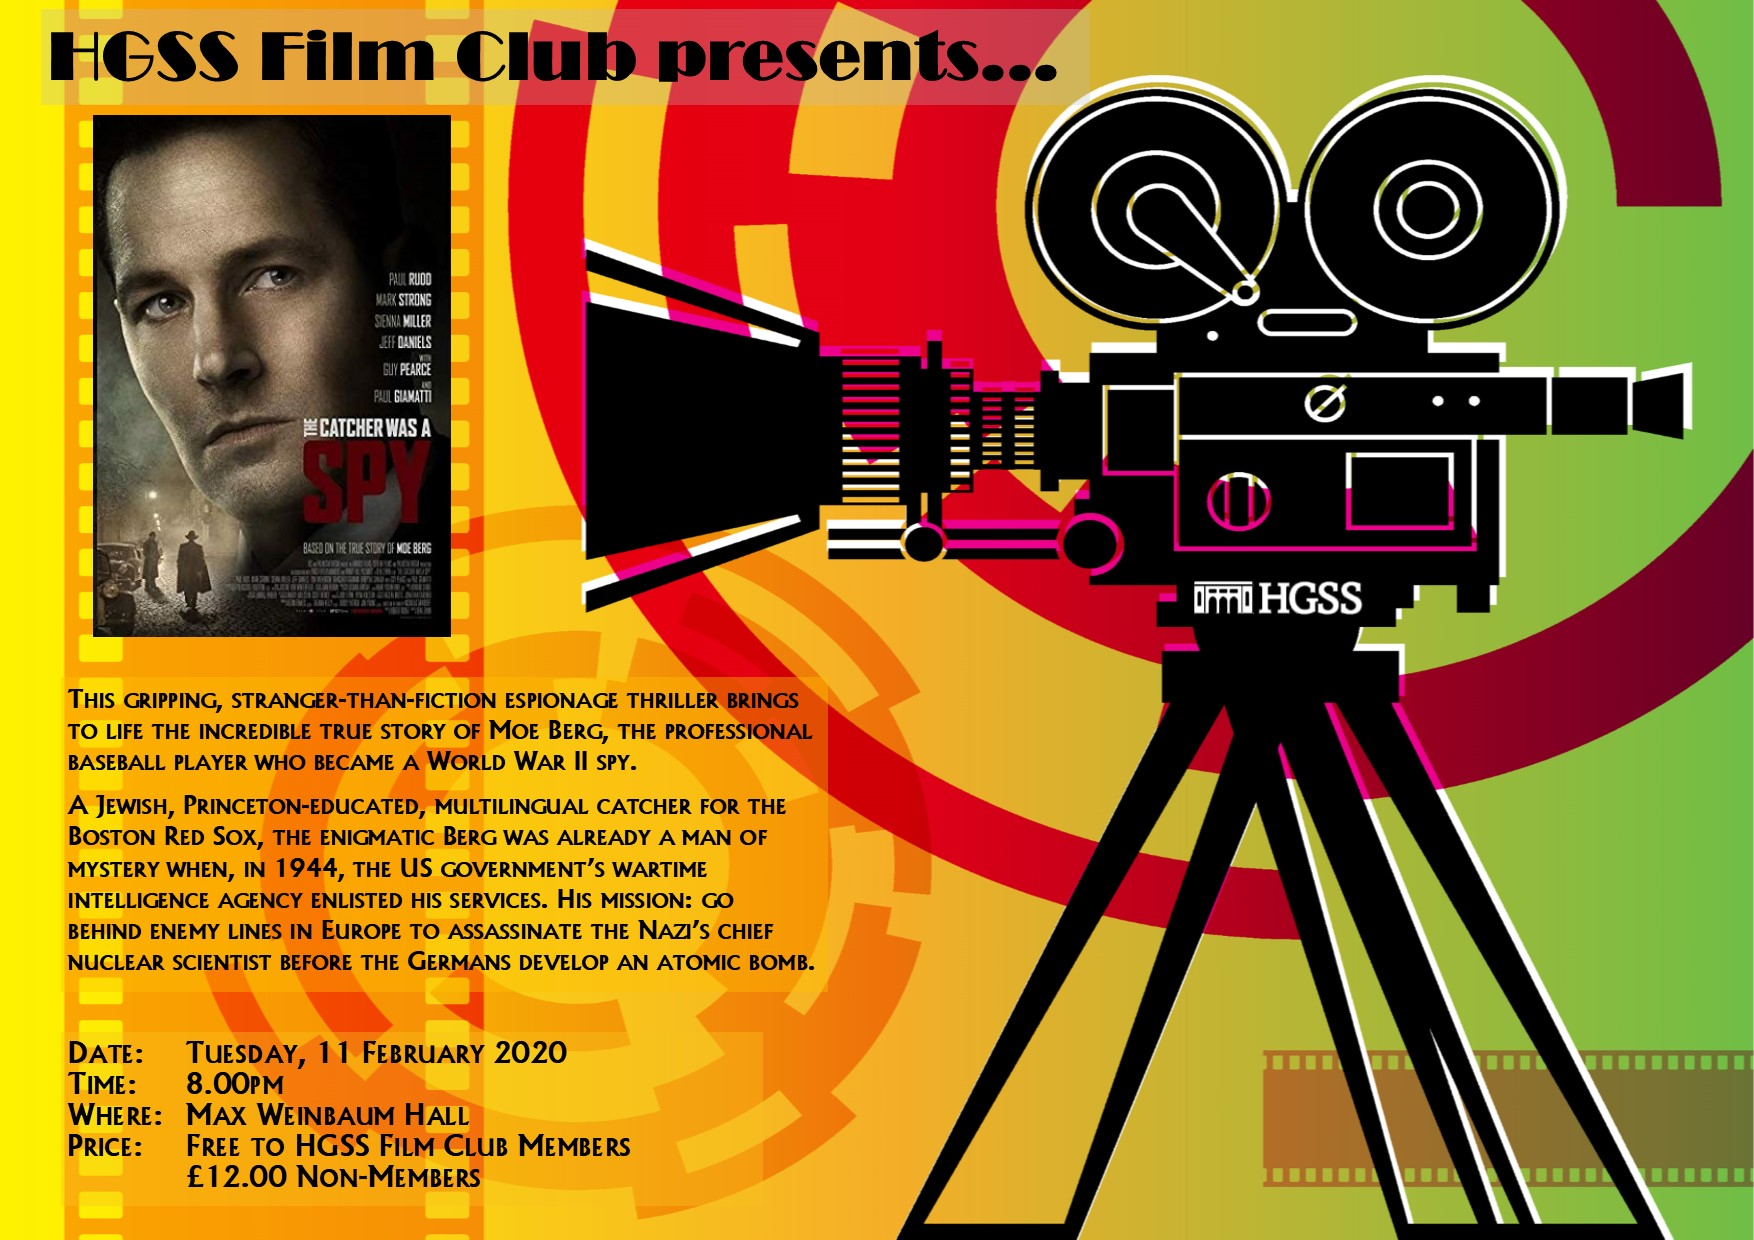 HGSS Film Club @ Max Weinbaum Hall